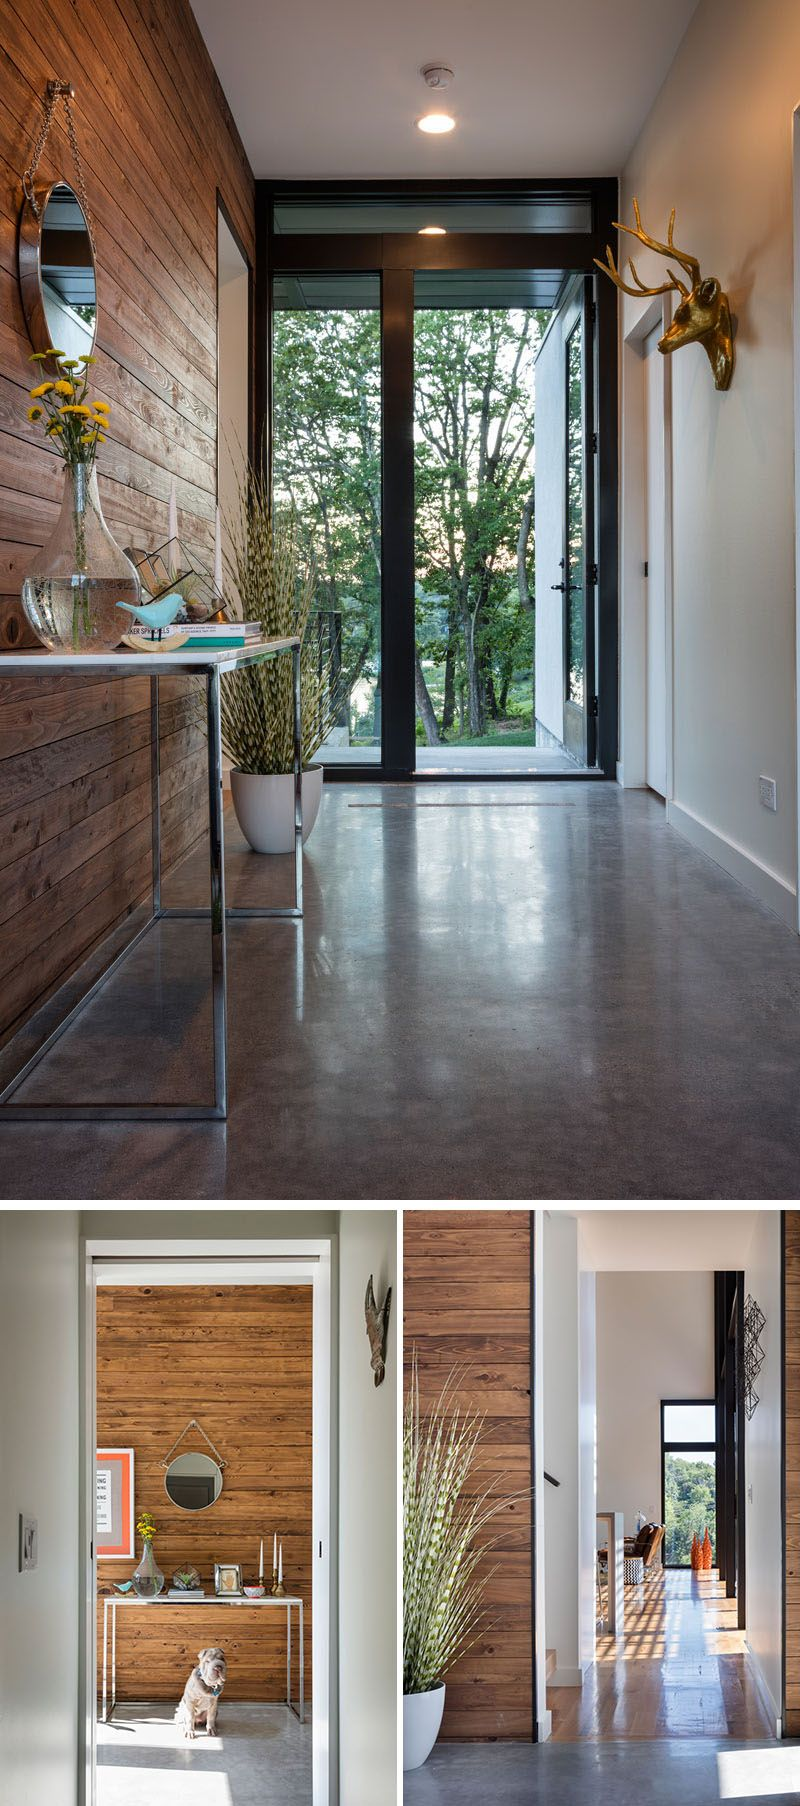 In this modern house, the entryway has a polished concrete floor and a wood  accent